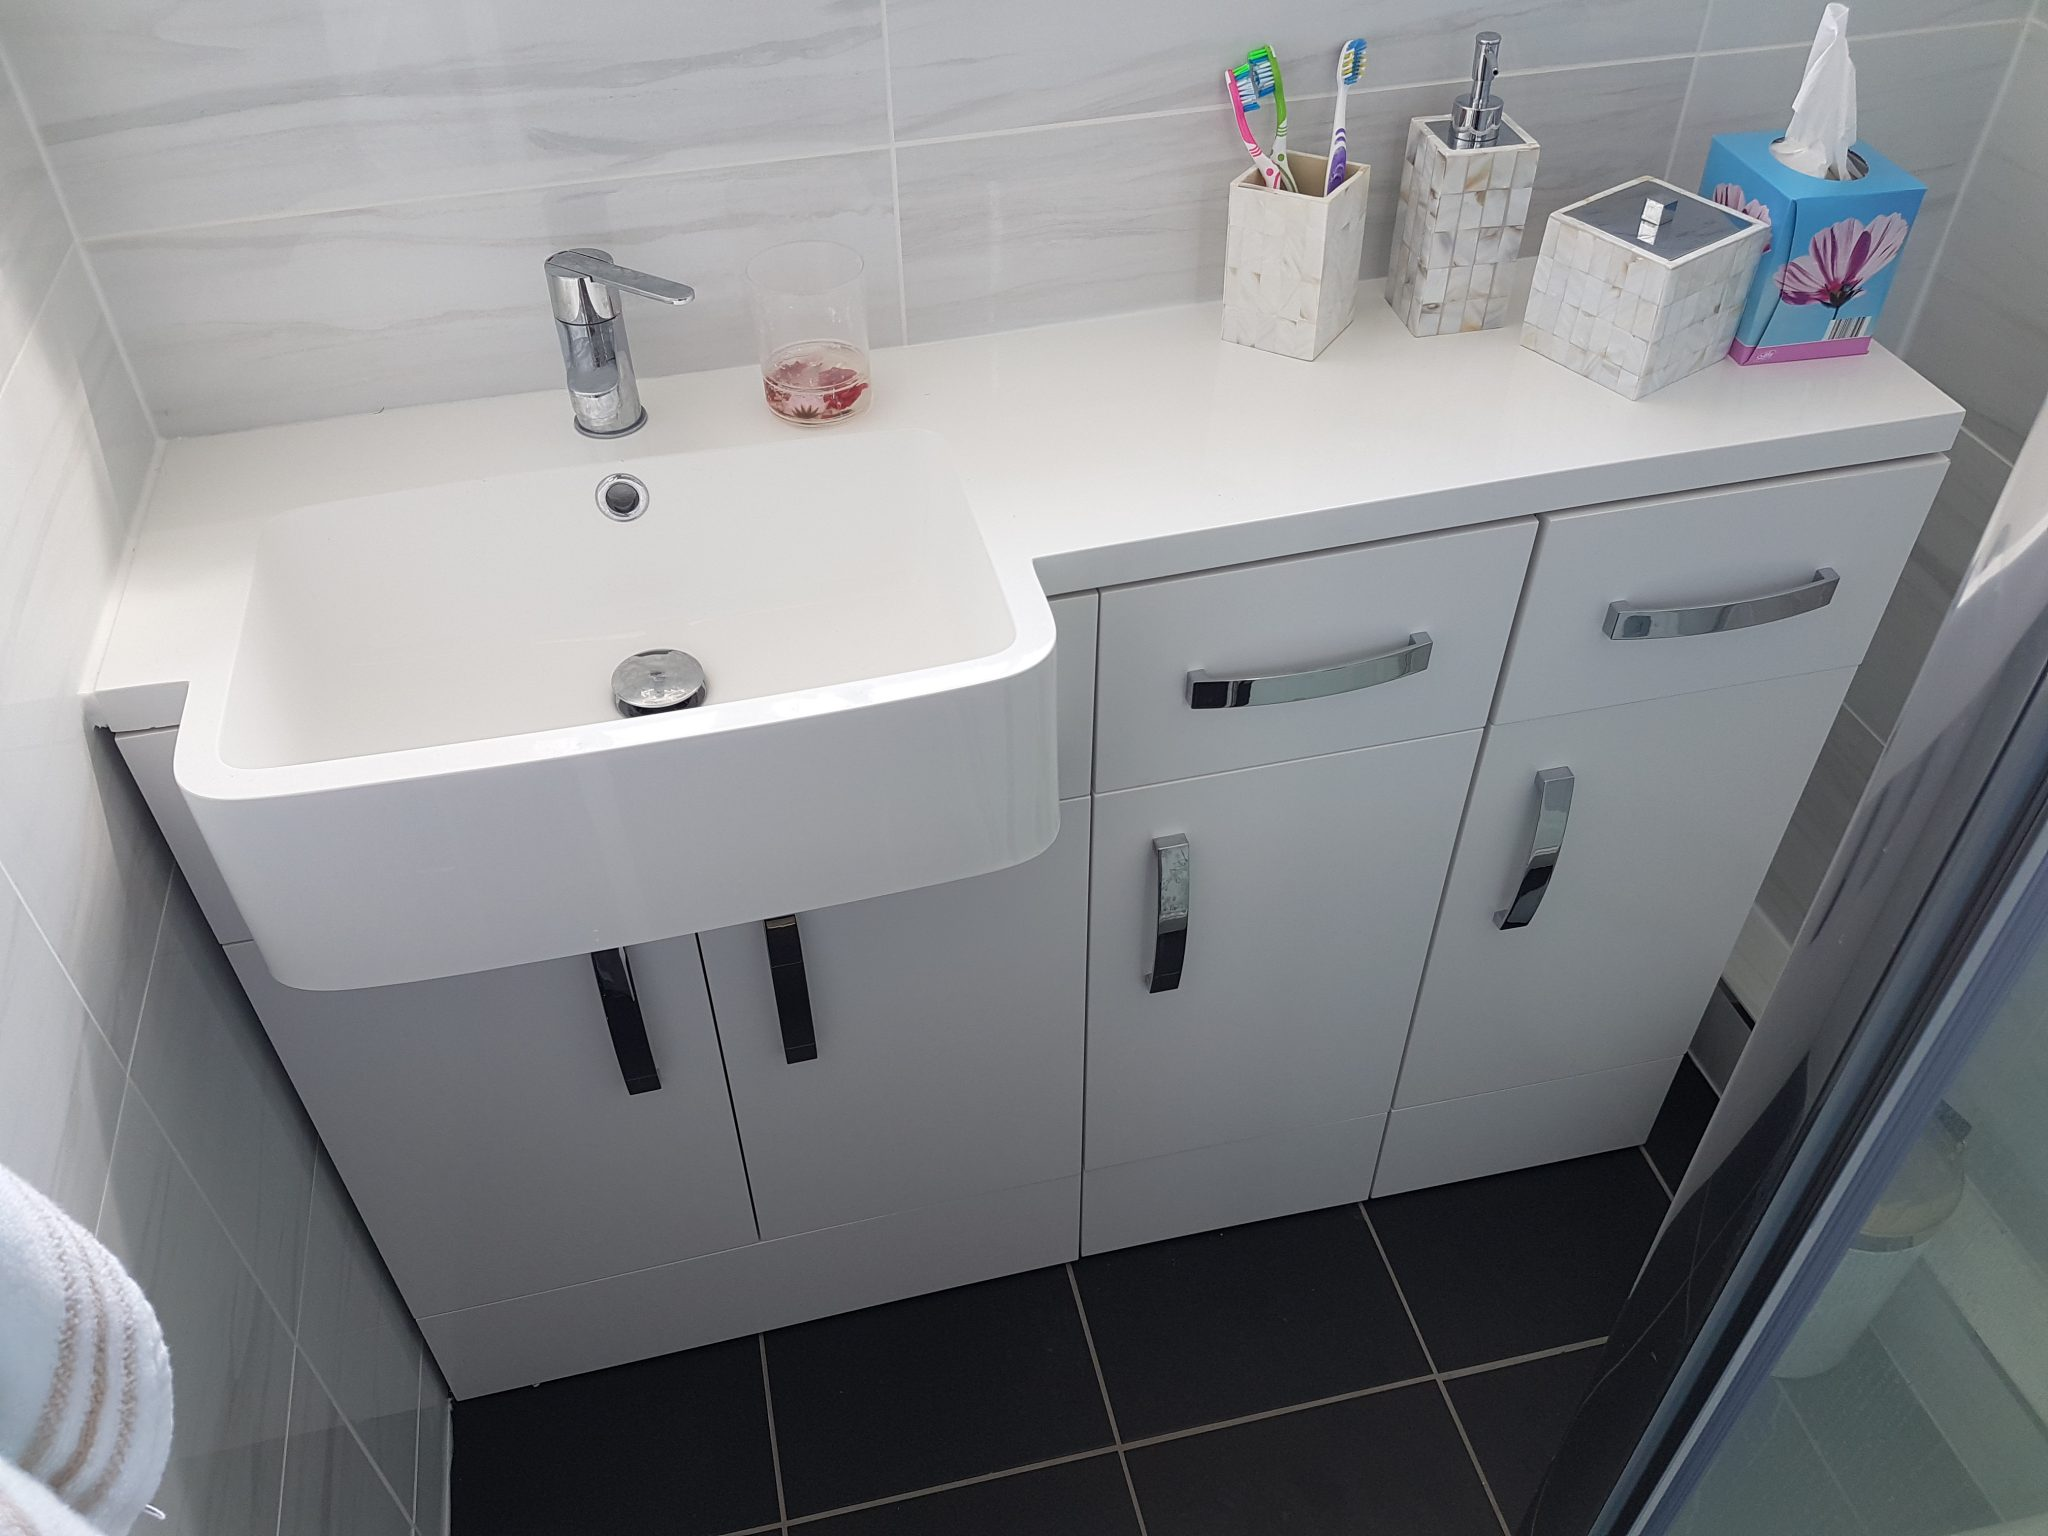 Shower room with storage